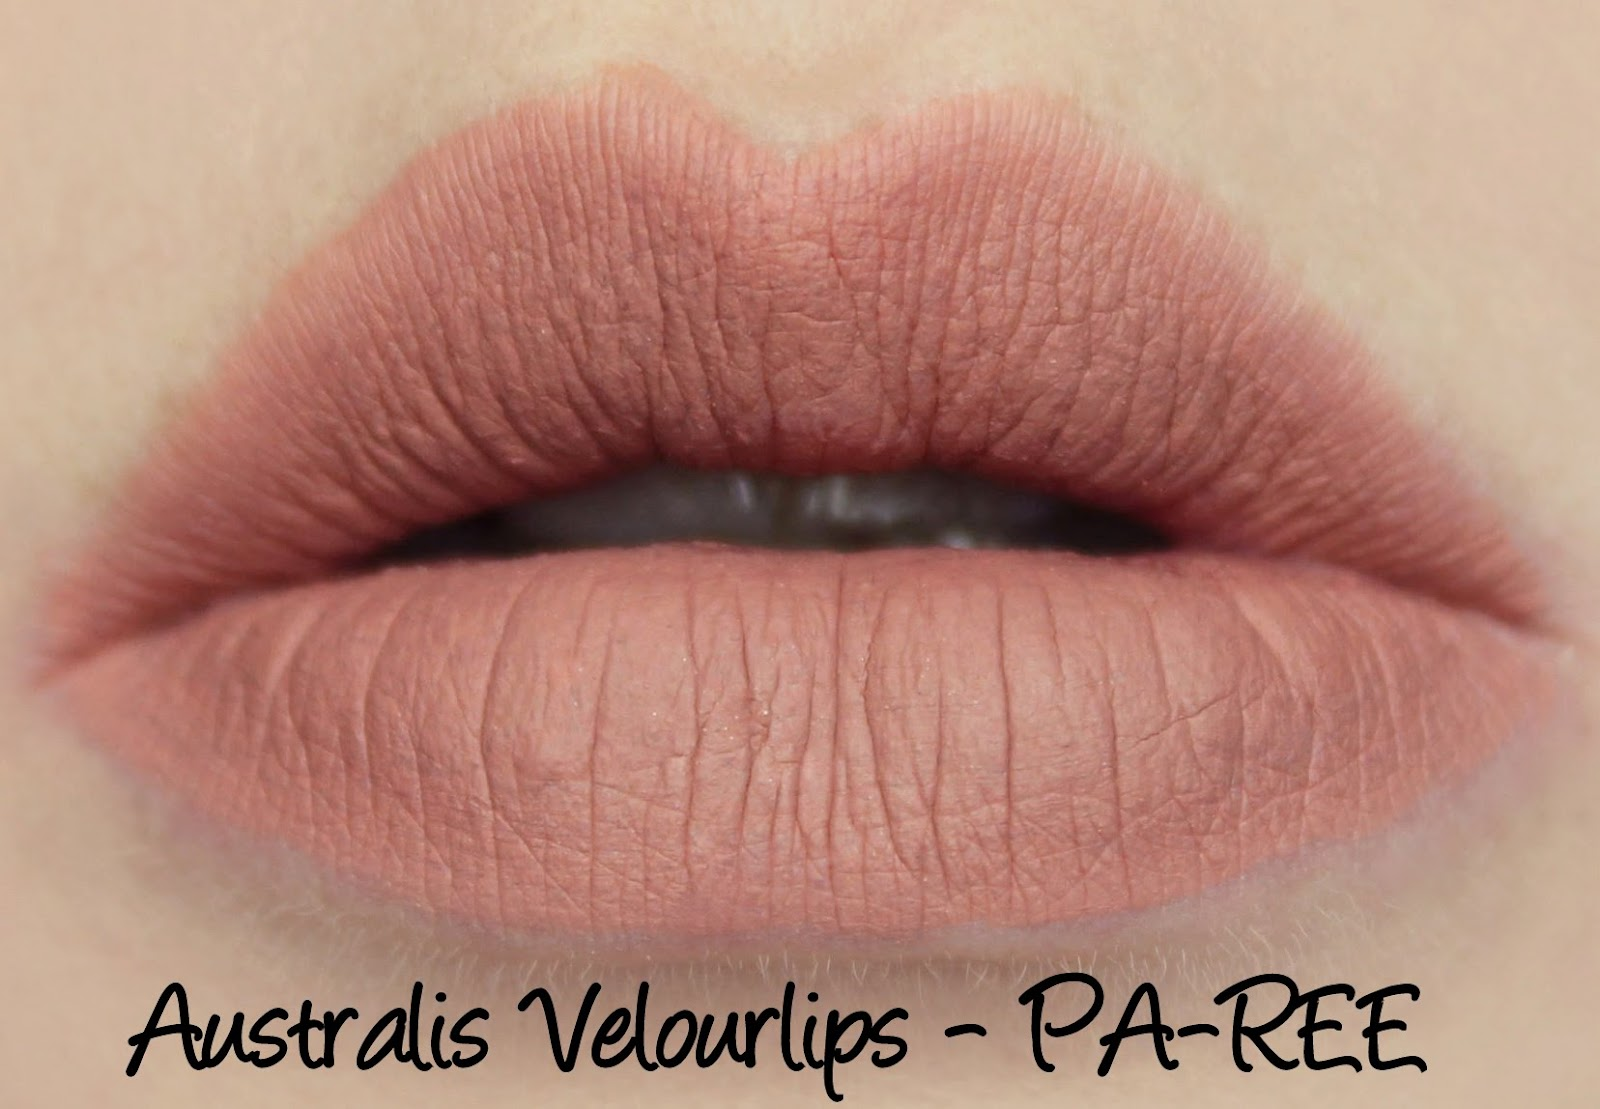 Australis Velourlips Matte Lip Cream - PA-REE Swatches & Review